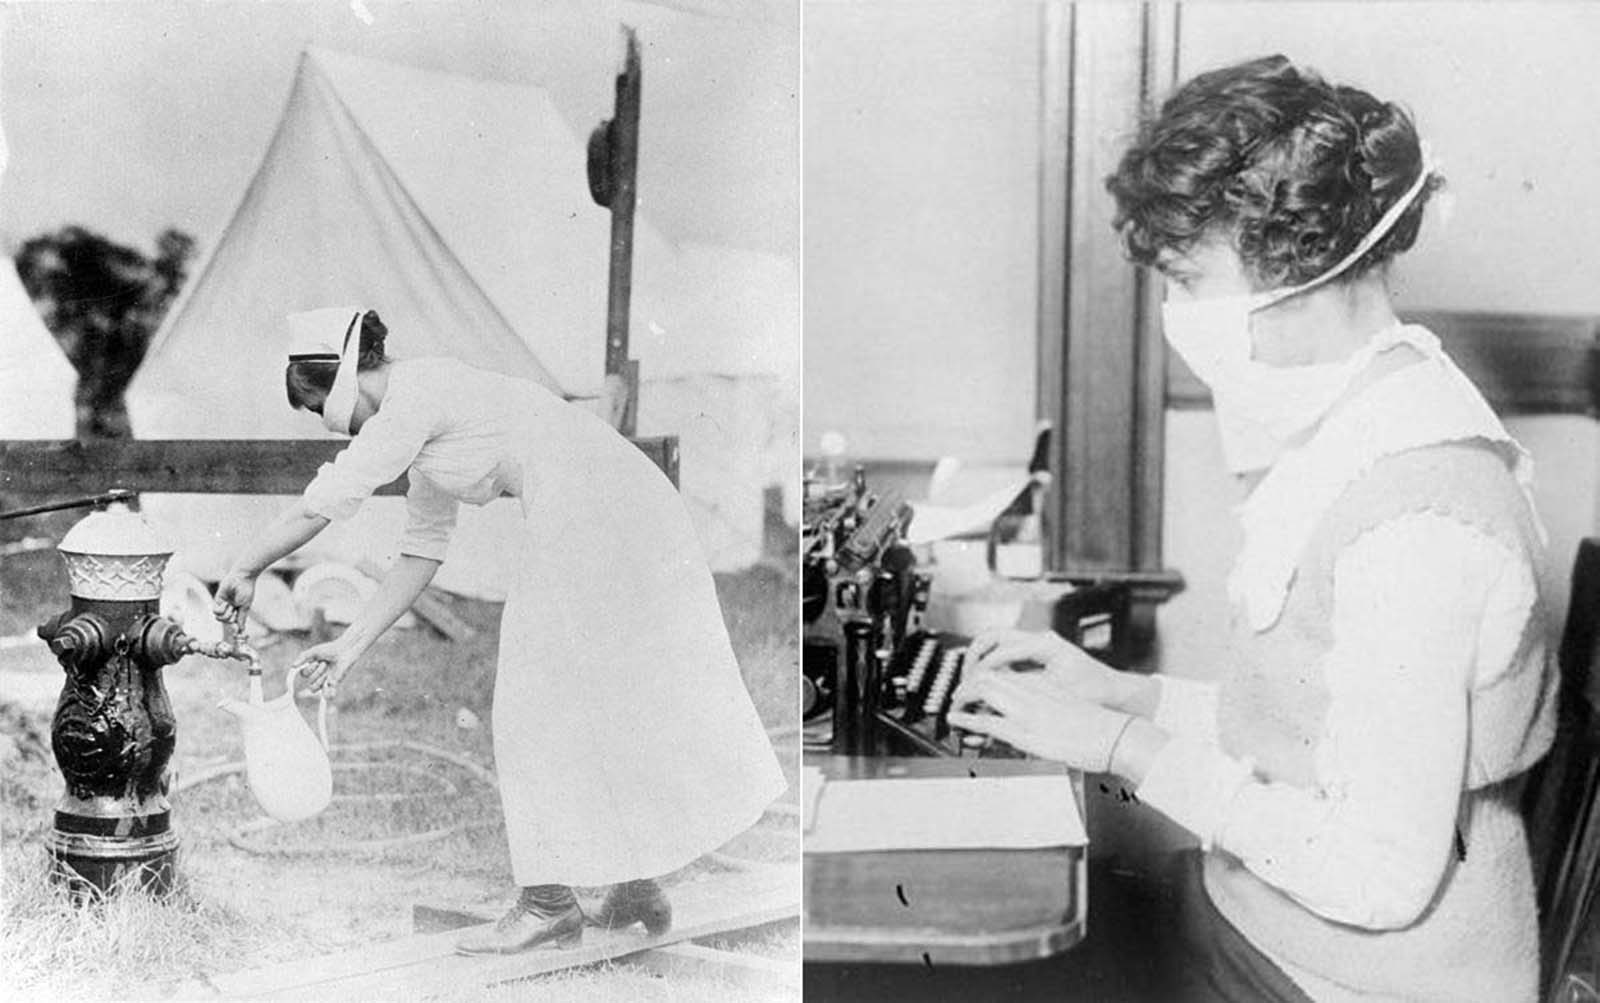 Left: A typist works while wearing a mask, in New York City. Right: A nurse protects herself while fetching water.